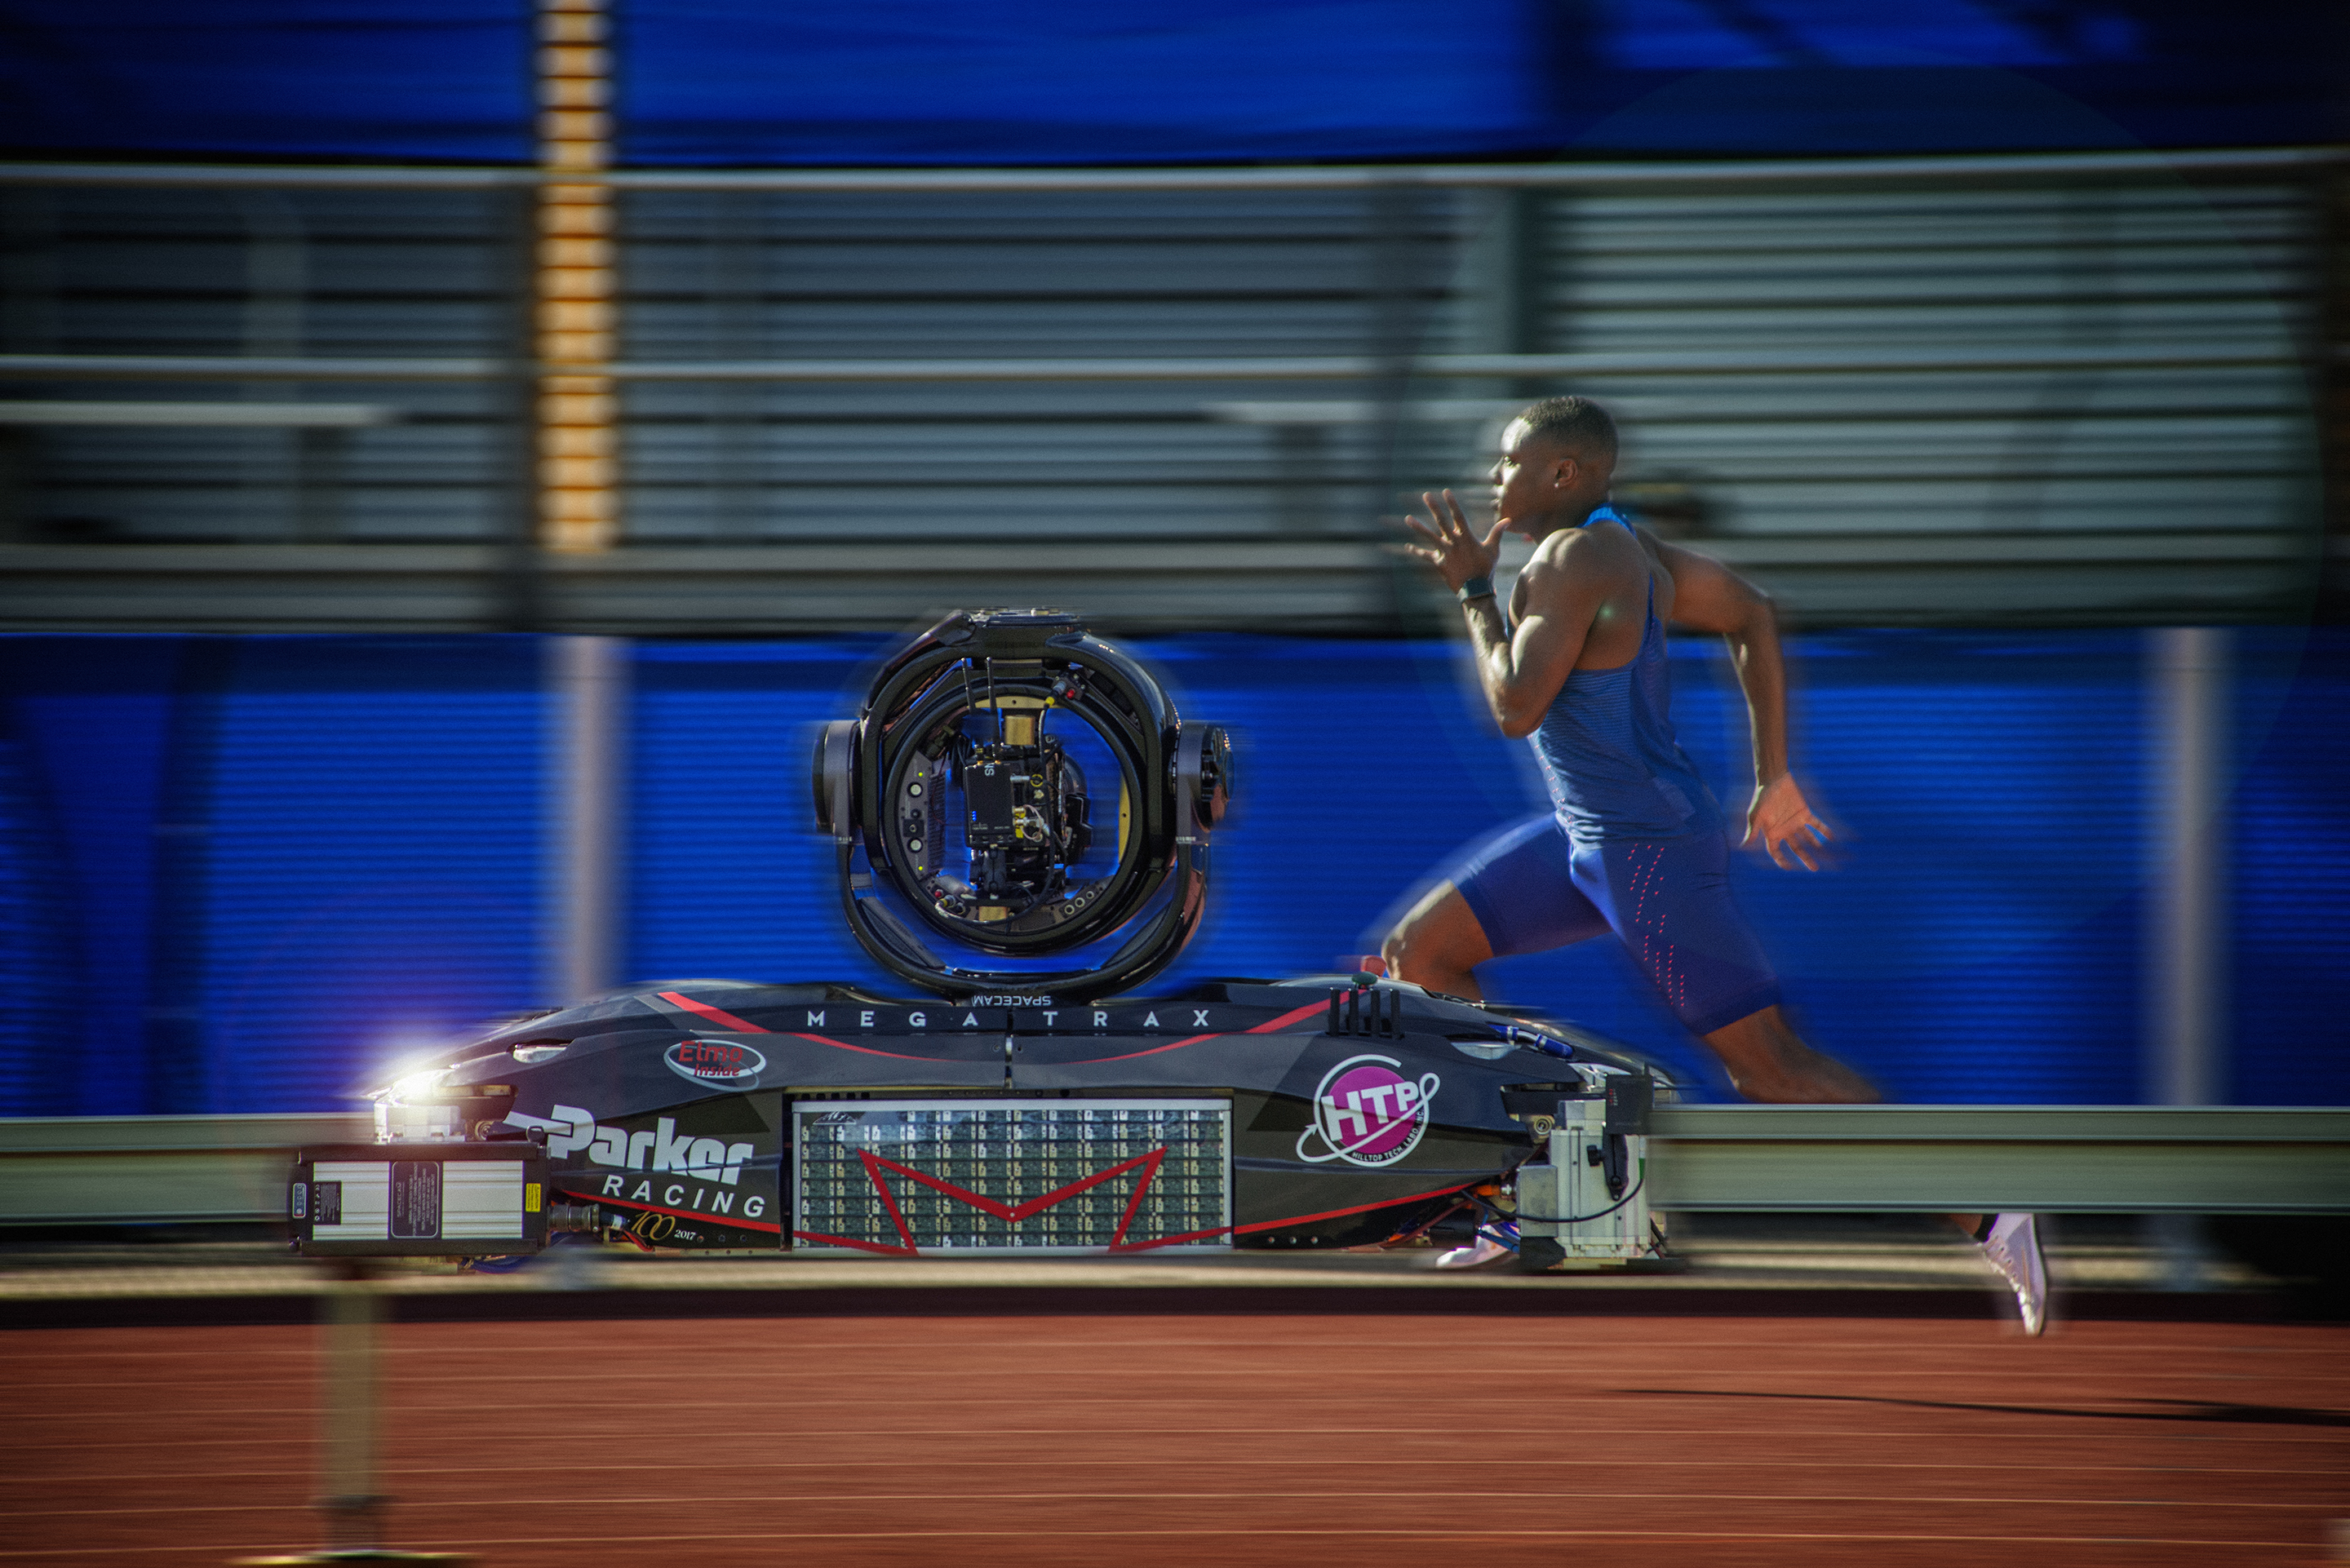 MegaTrax films for the US Olympic Track & Field team